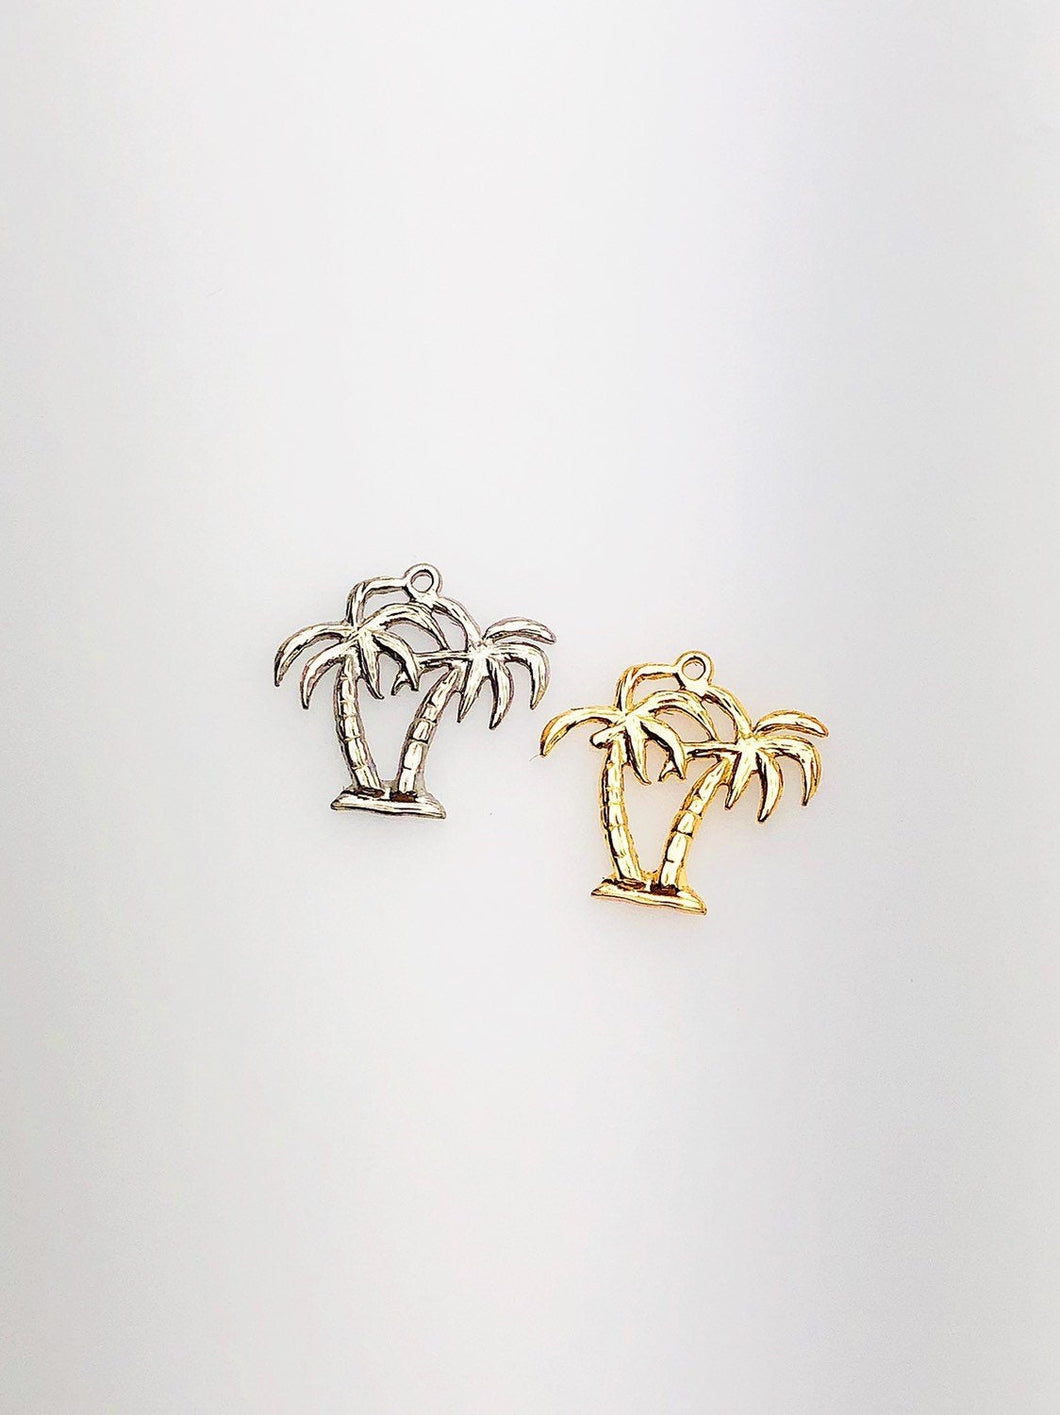 14K Solid Gold Palm Trees Charm w/ Ring, 11.9x12.2mm, Made in USA (L-13)